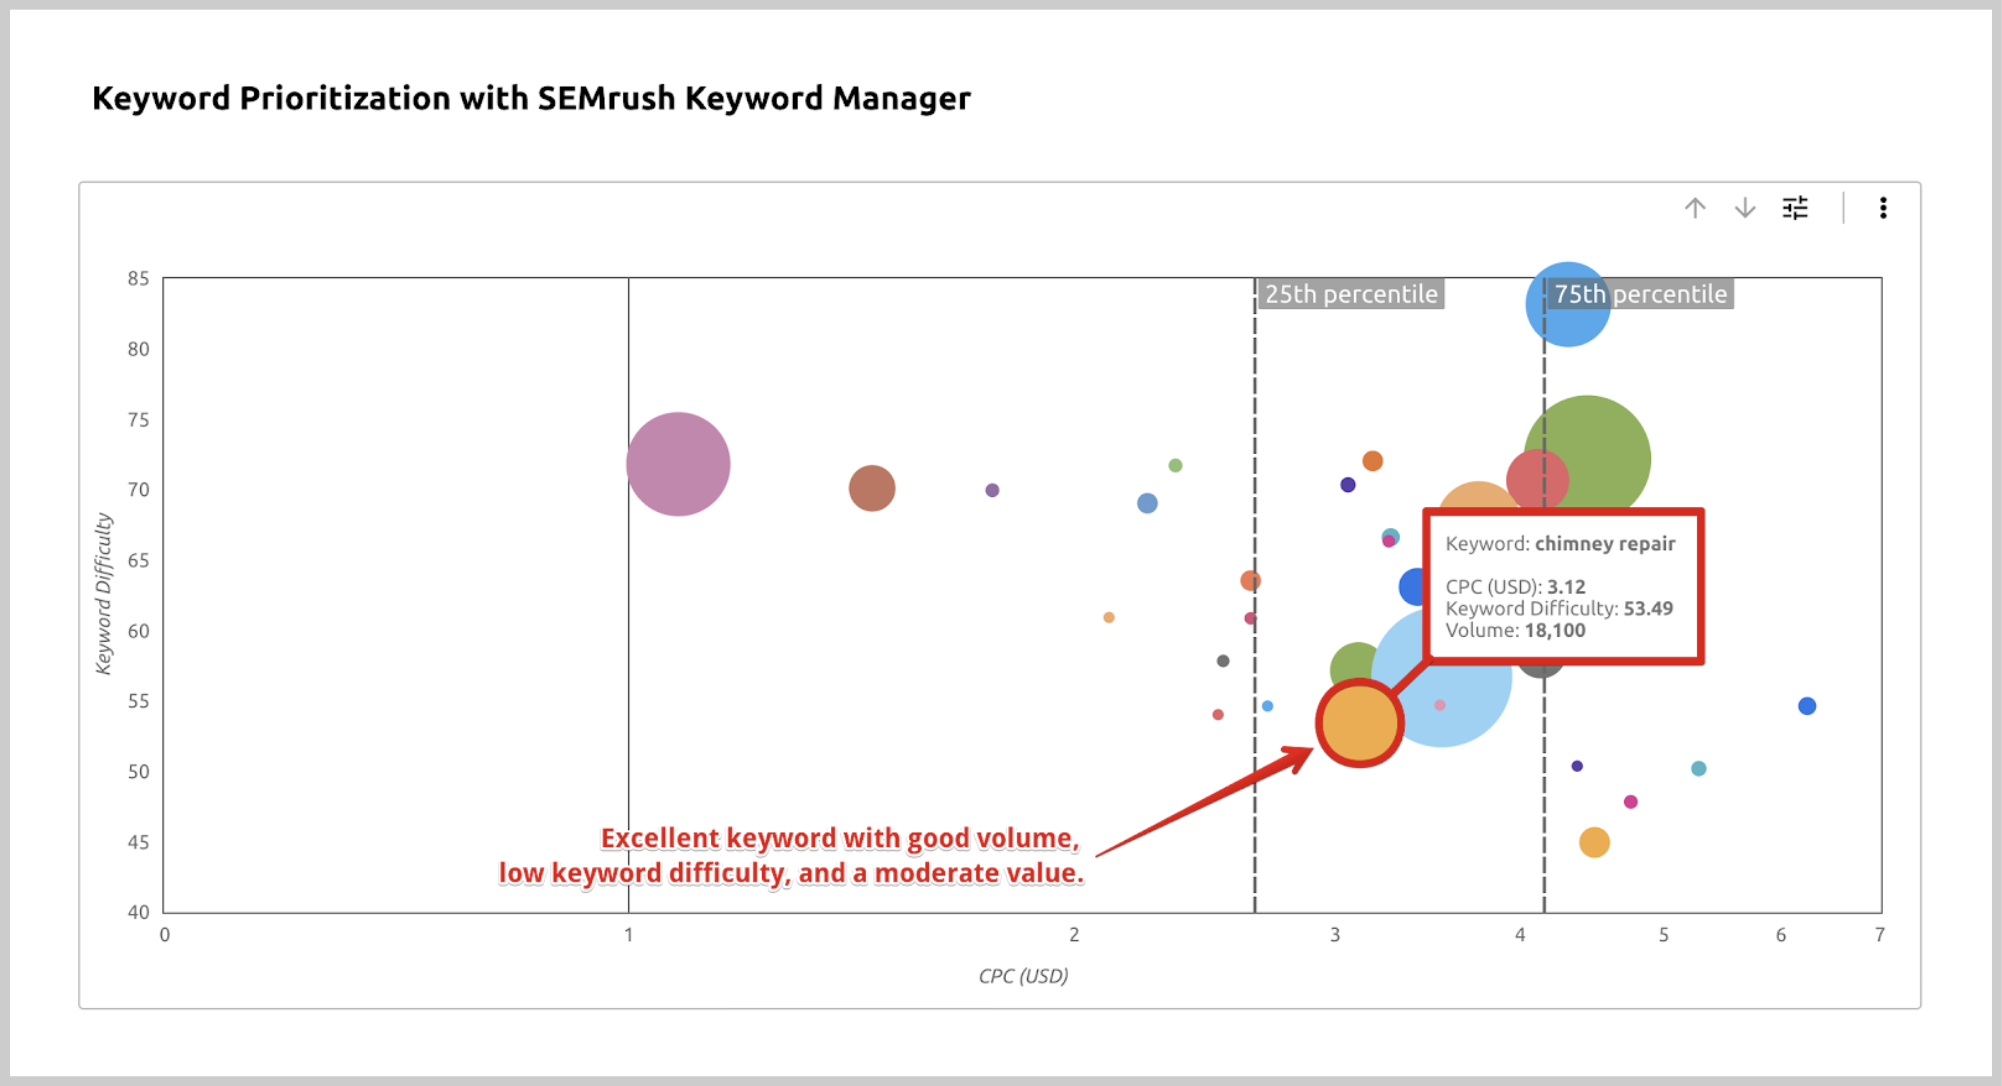 SEMrush Keyword Data in Data Studio